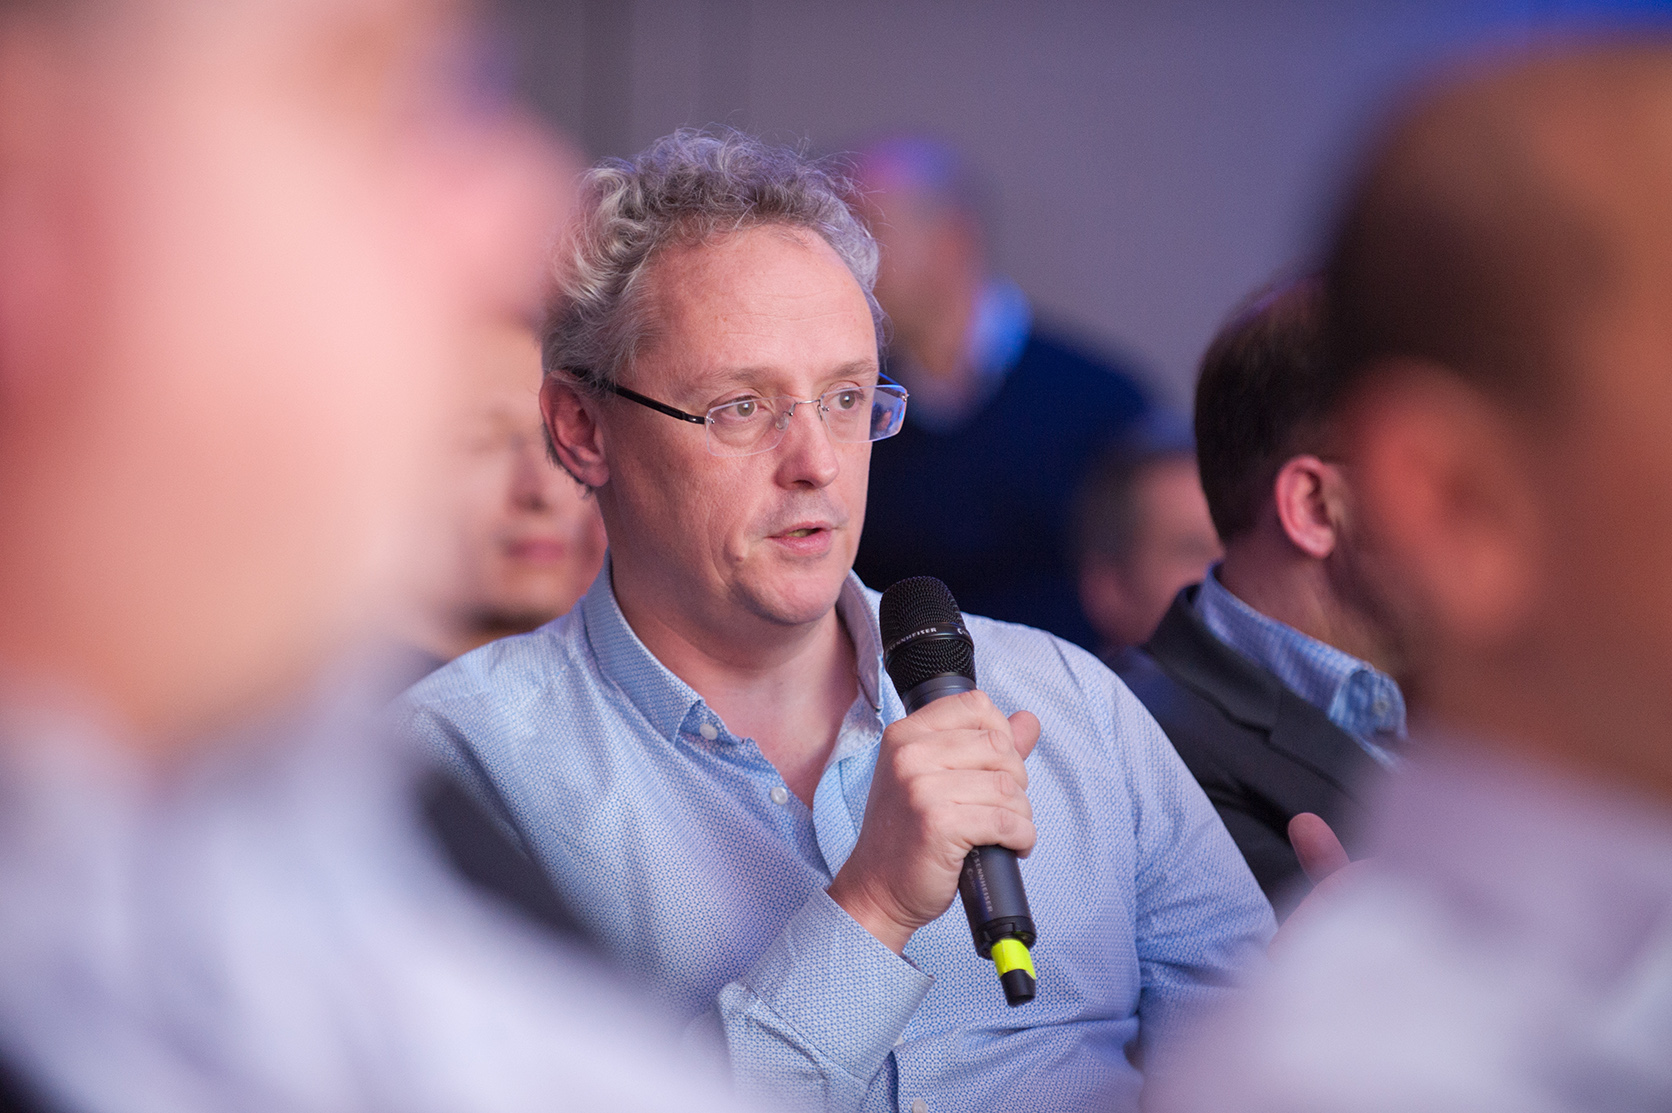 Candid portrait of an attendee speaking during a Q&A at a conference event